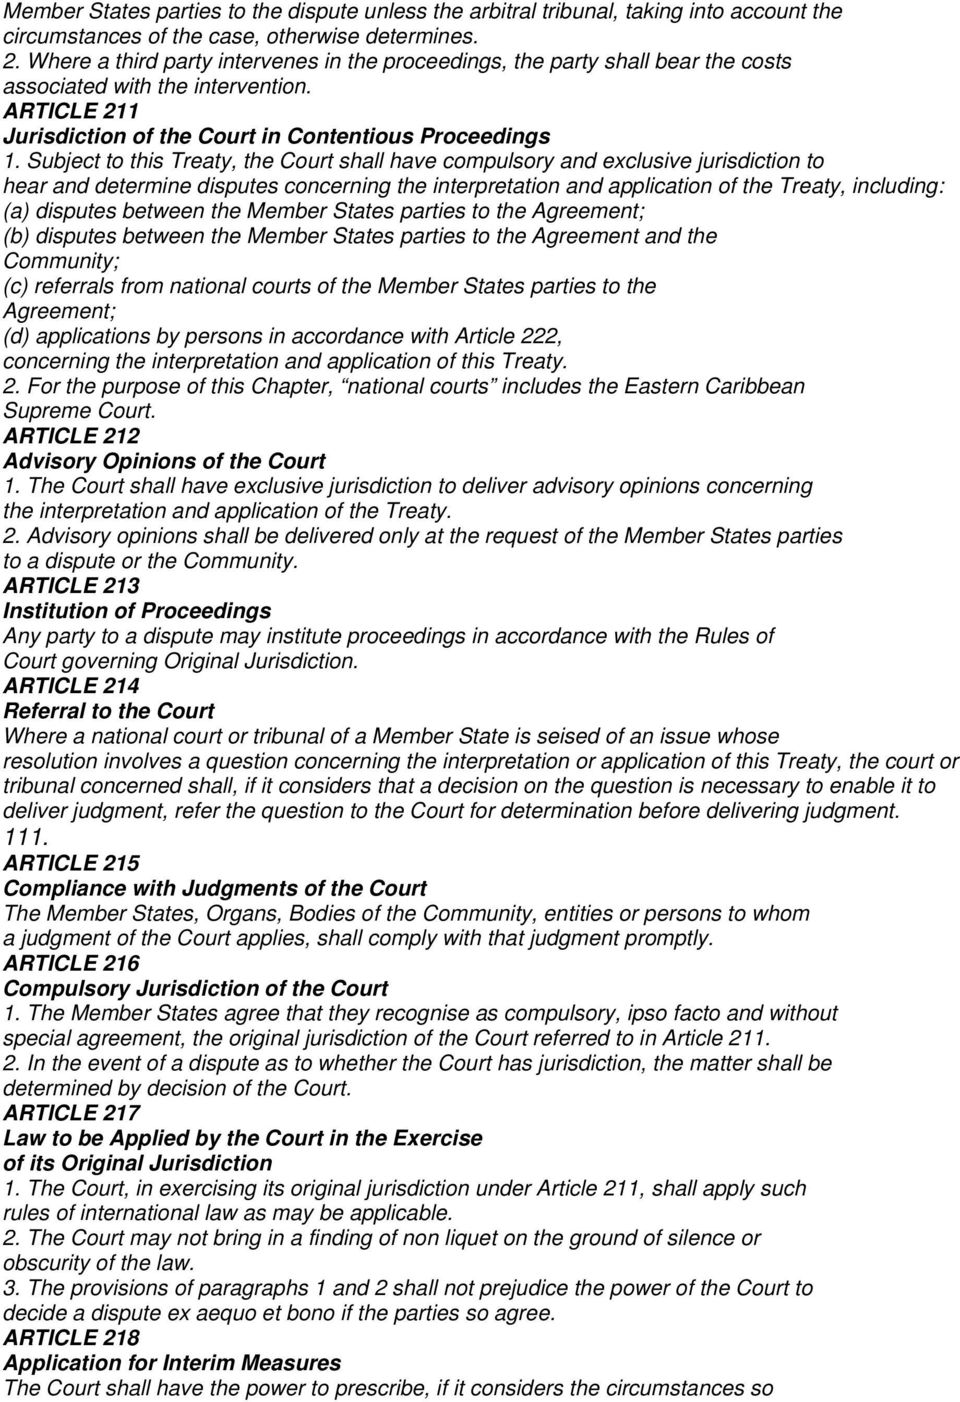 Subject to this Treaty, the Court shall have compulsory and exclusive jurisdiction to hear and determine disputes concerning the interpretation and application of the Treaty, including: (a) disputes